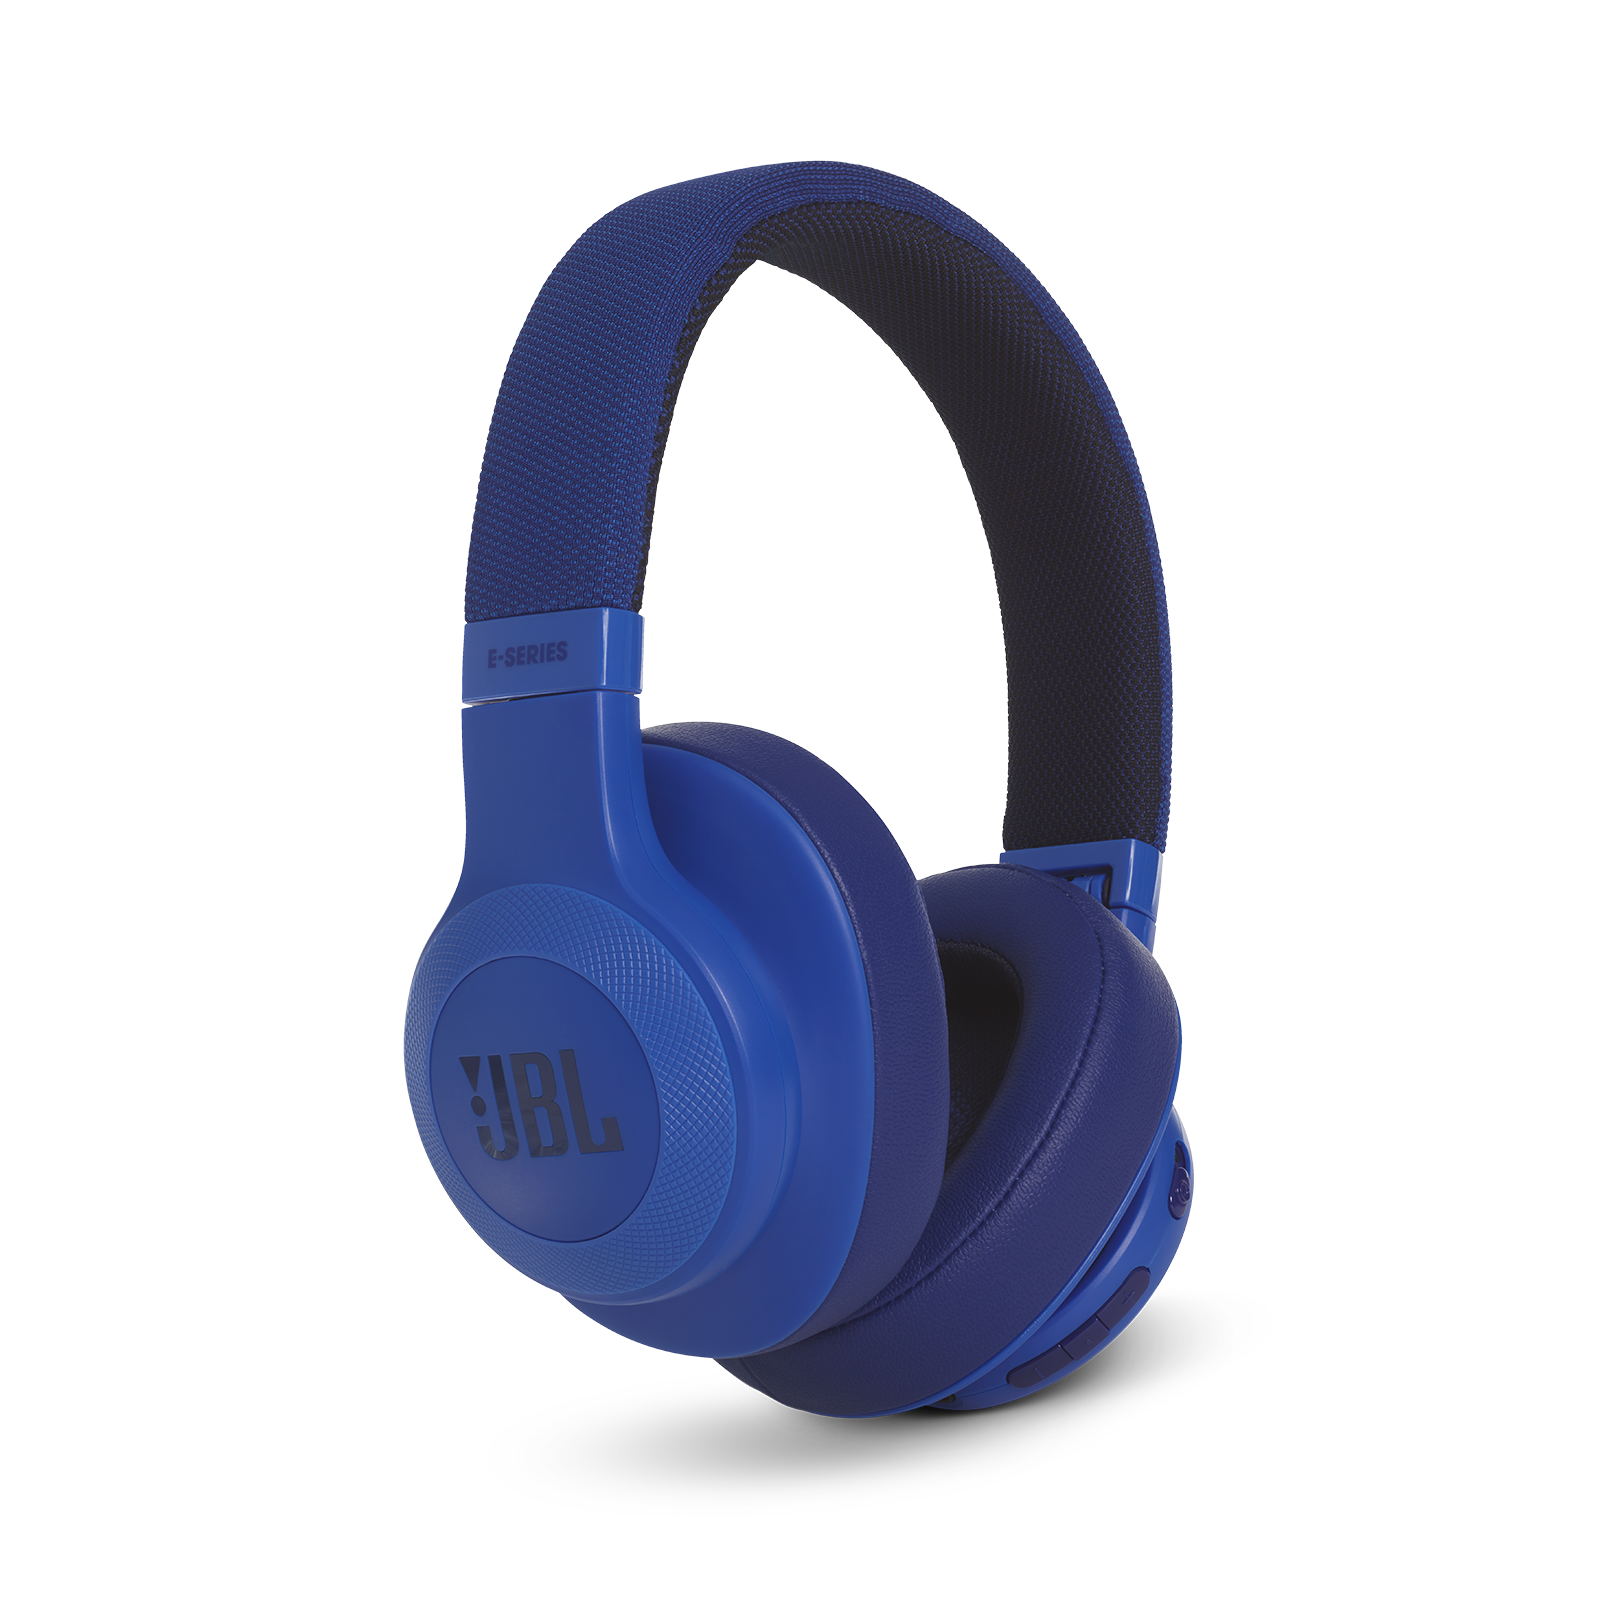 JBL E55BT - Blue - Wireless over-ear headphones - Detailshot 2